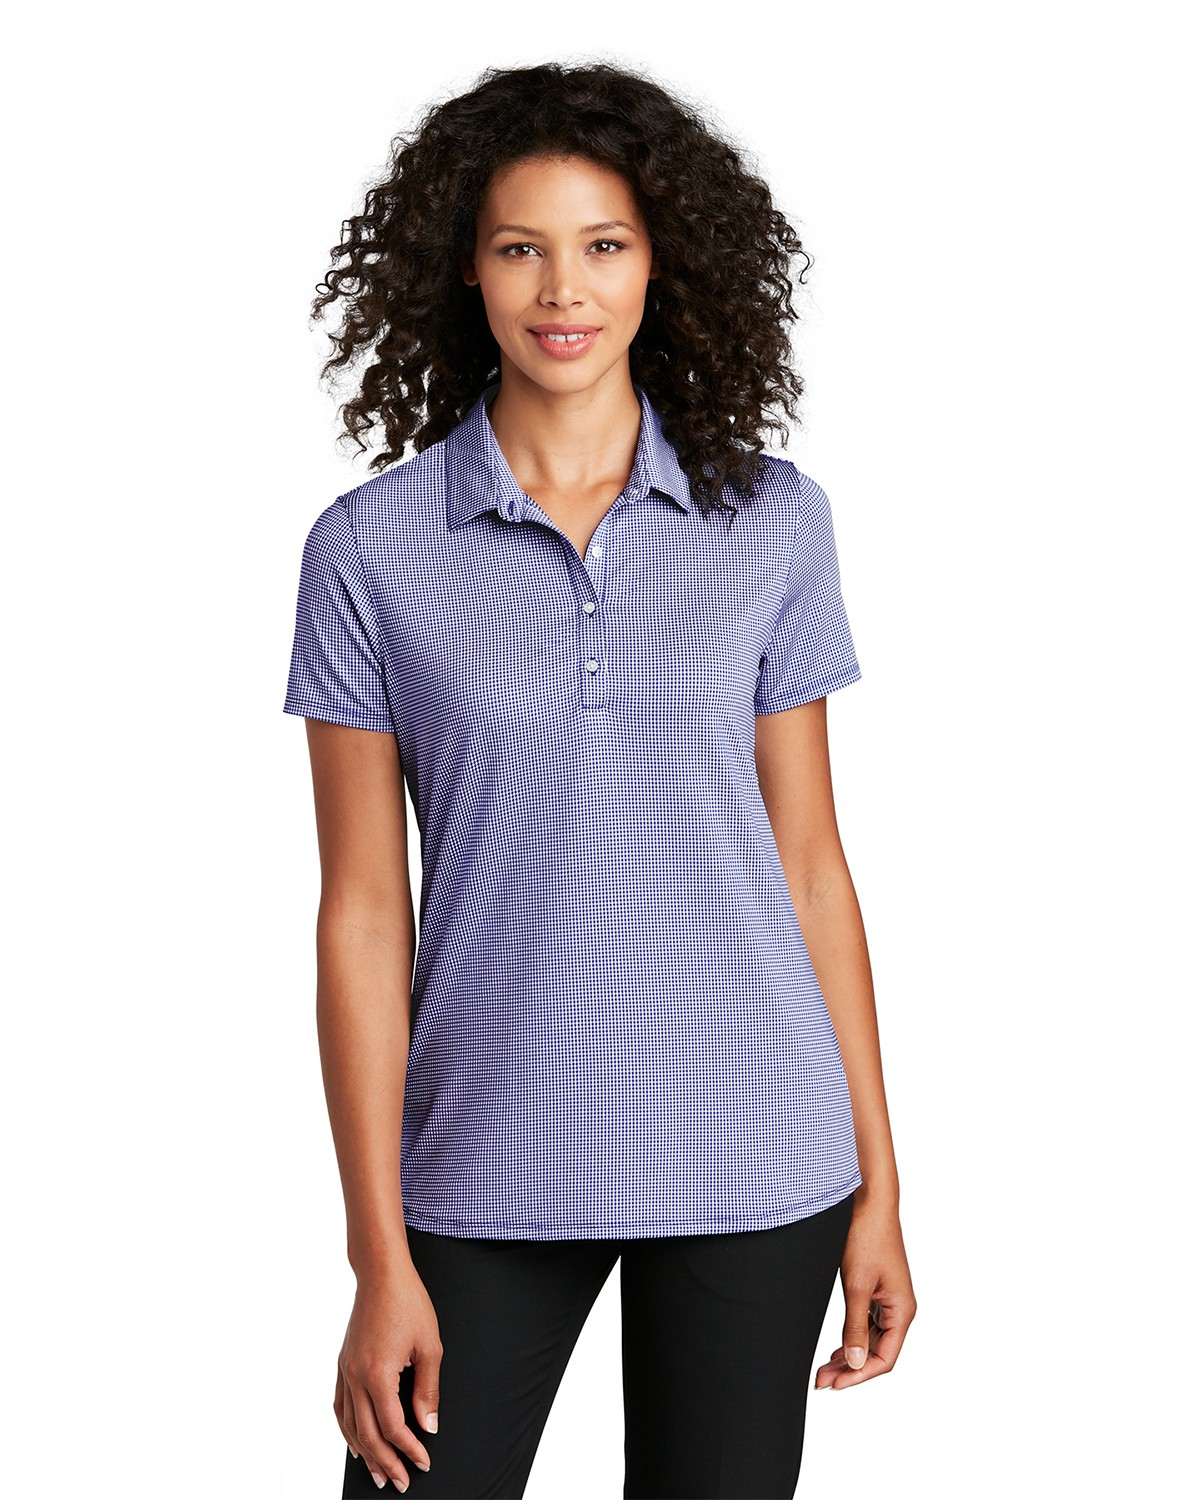 Port Authority LK646 Women's Gingham Polo - True Navy/ White - XS from Port Authority